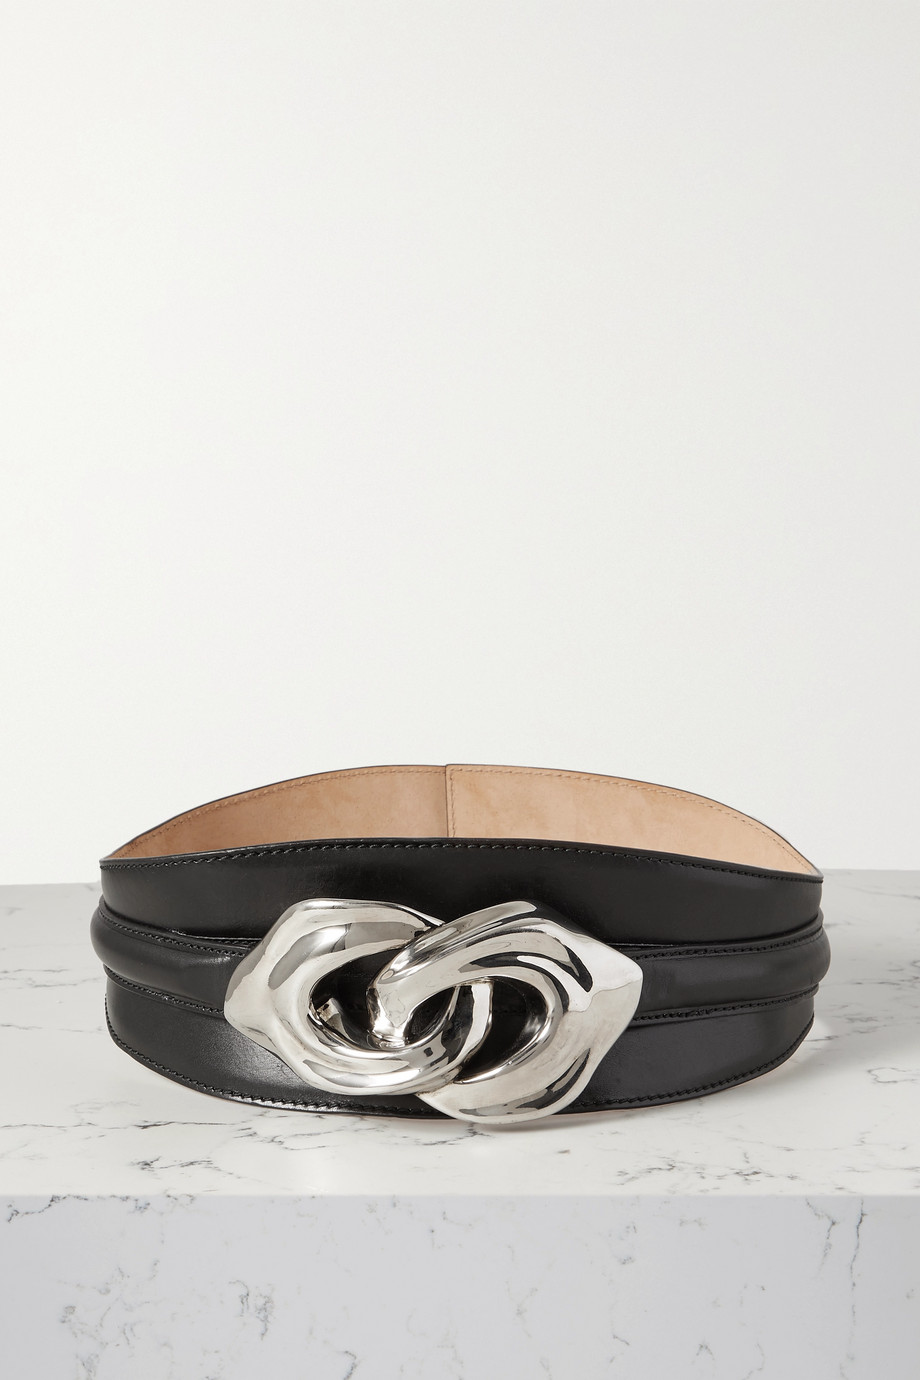 Alexander McQueen Embellished leather waist belt